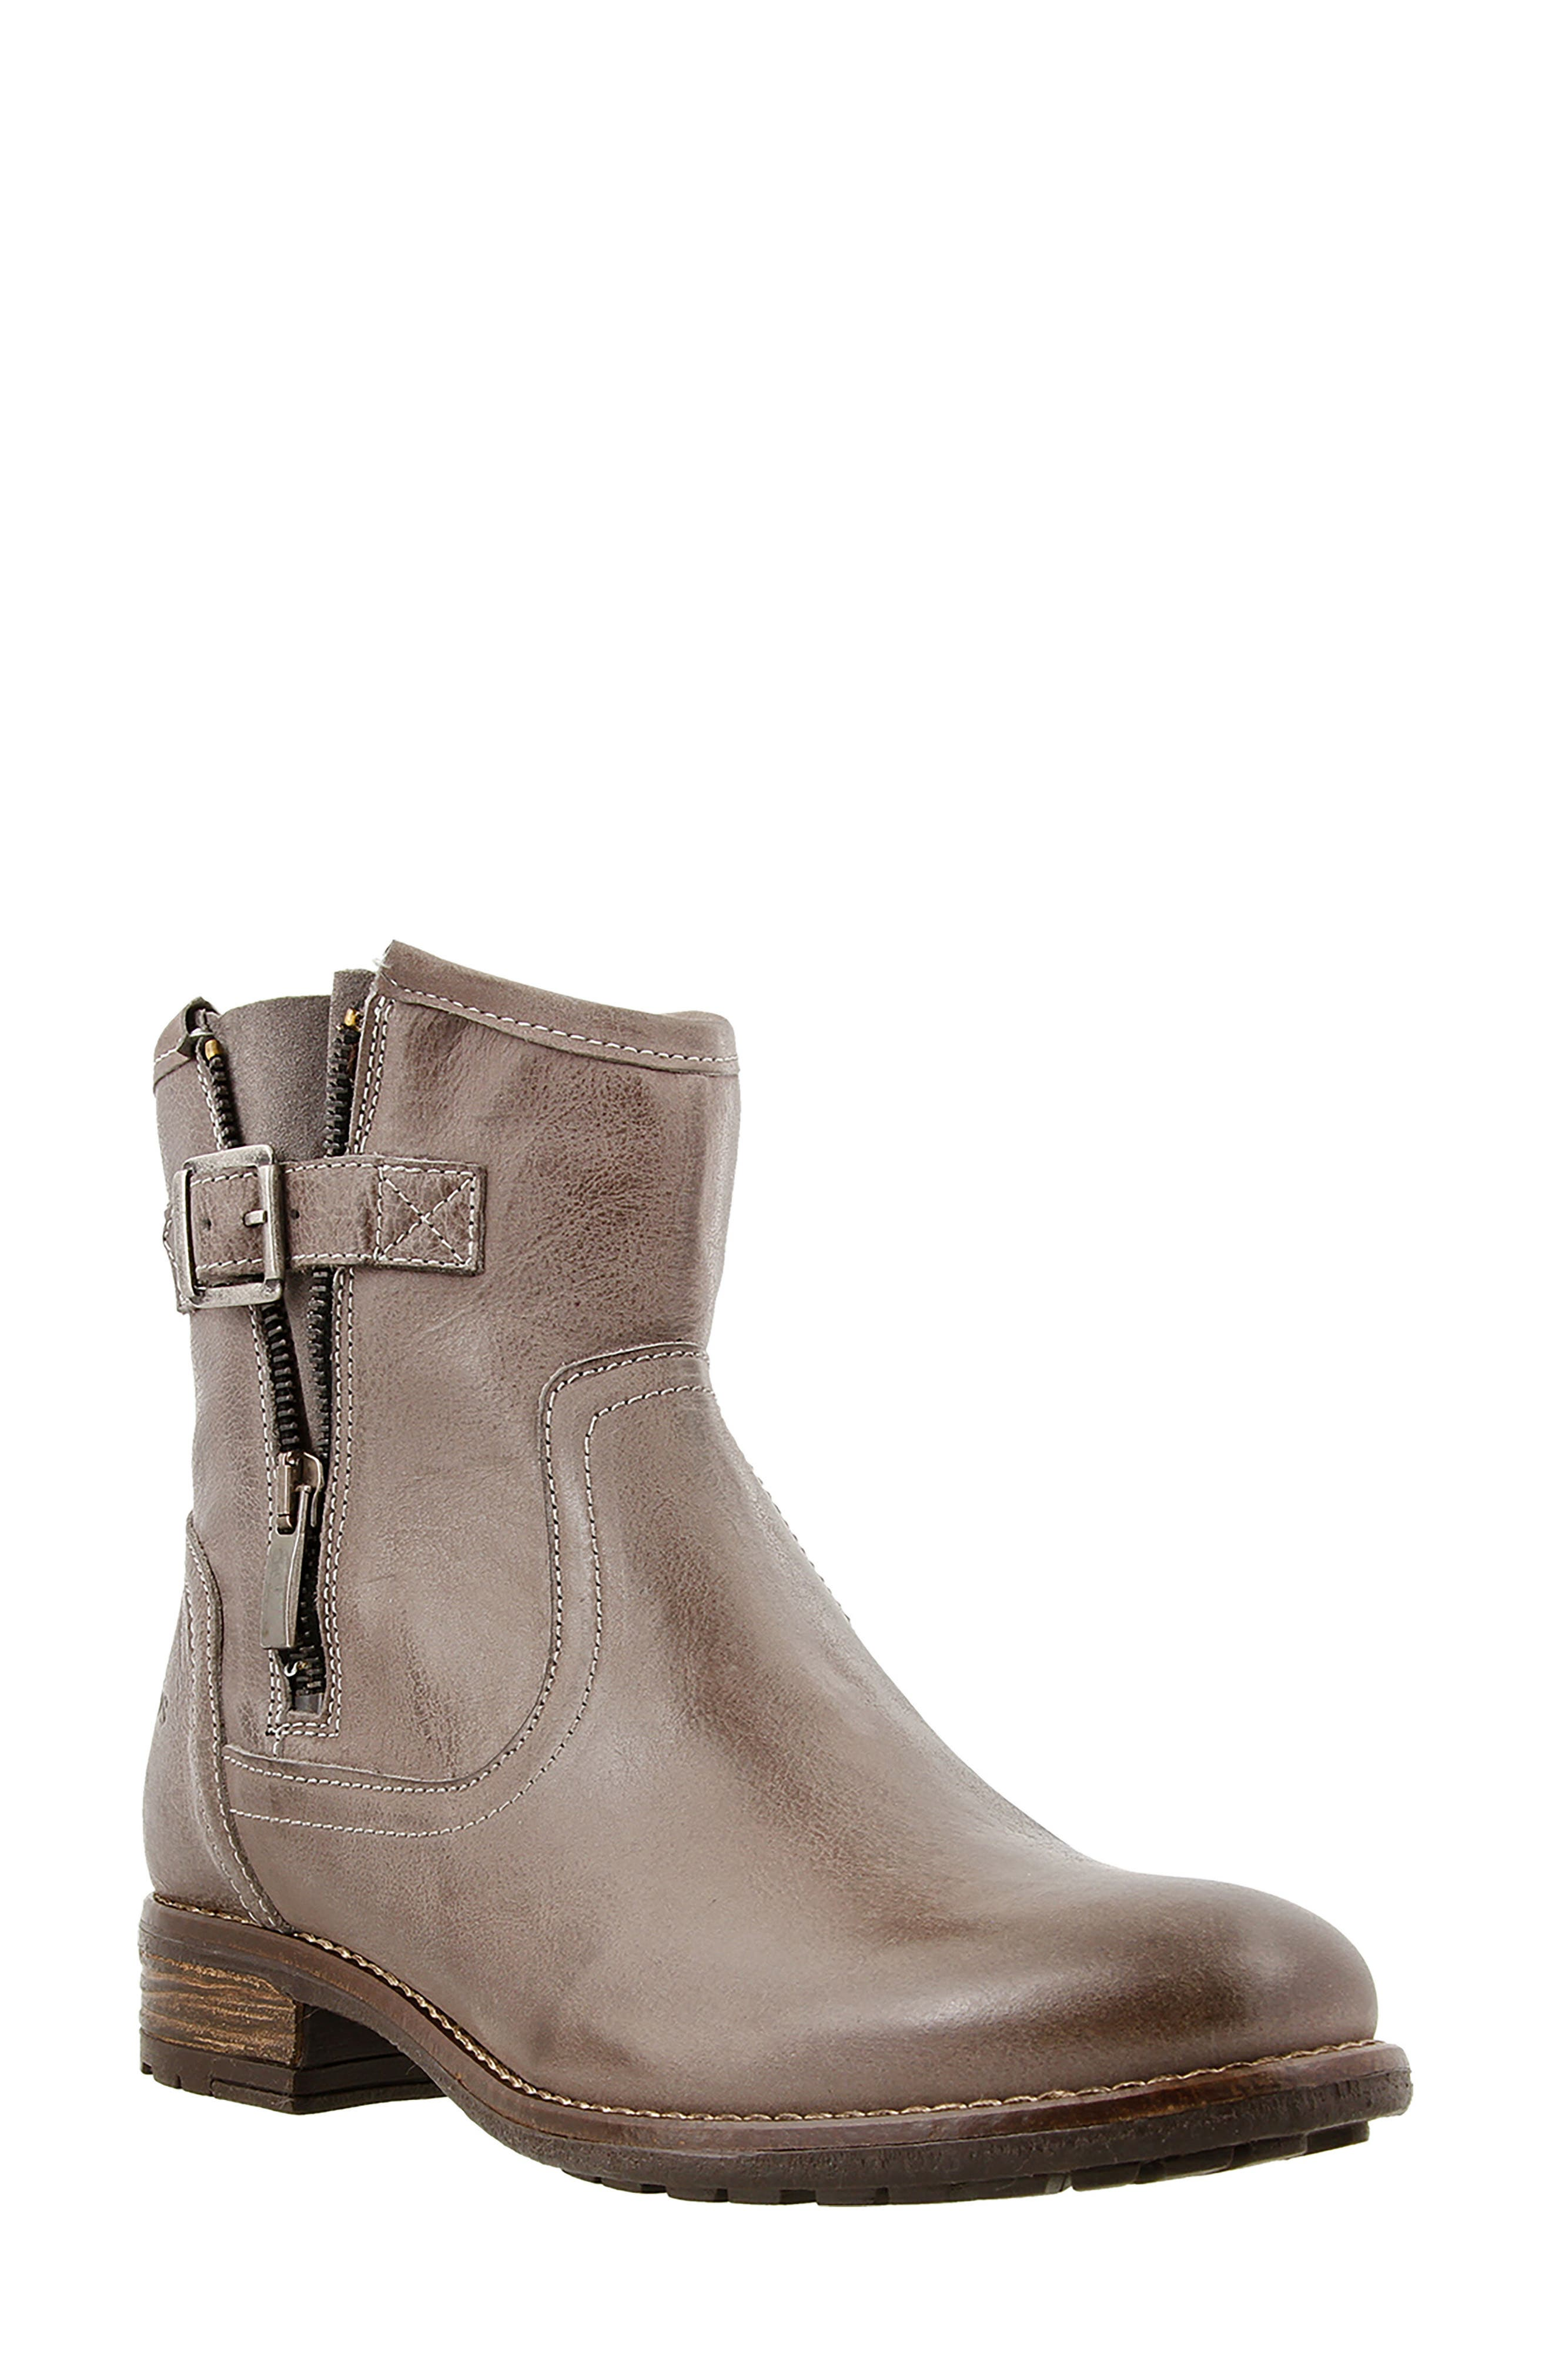 Convoy Boot,                             Main thumbnail 1, color,                             Grey Leather